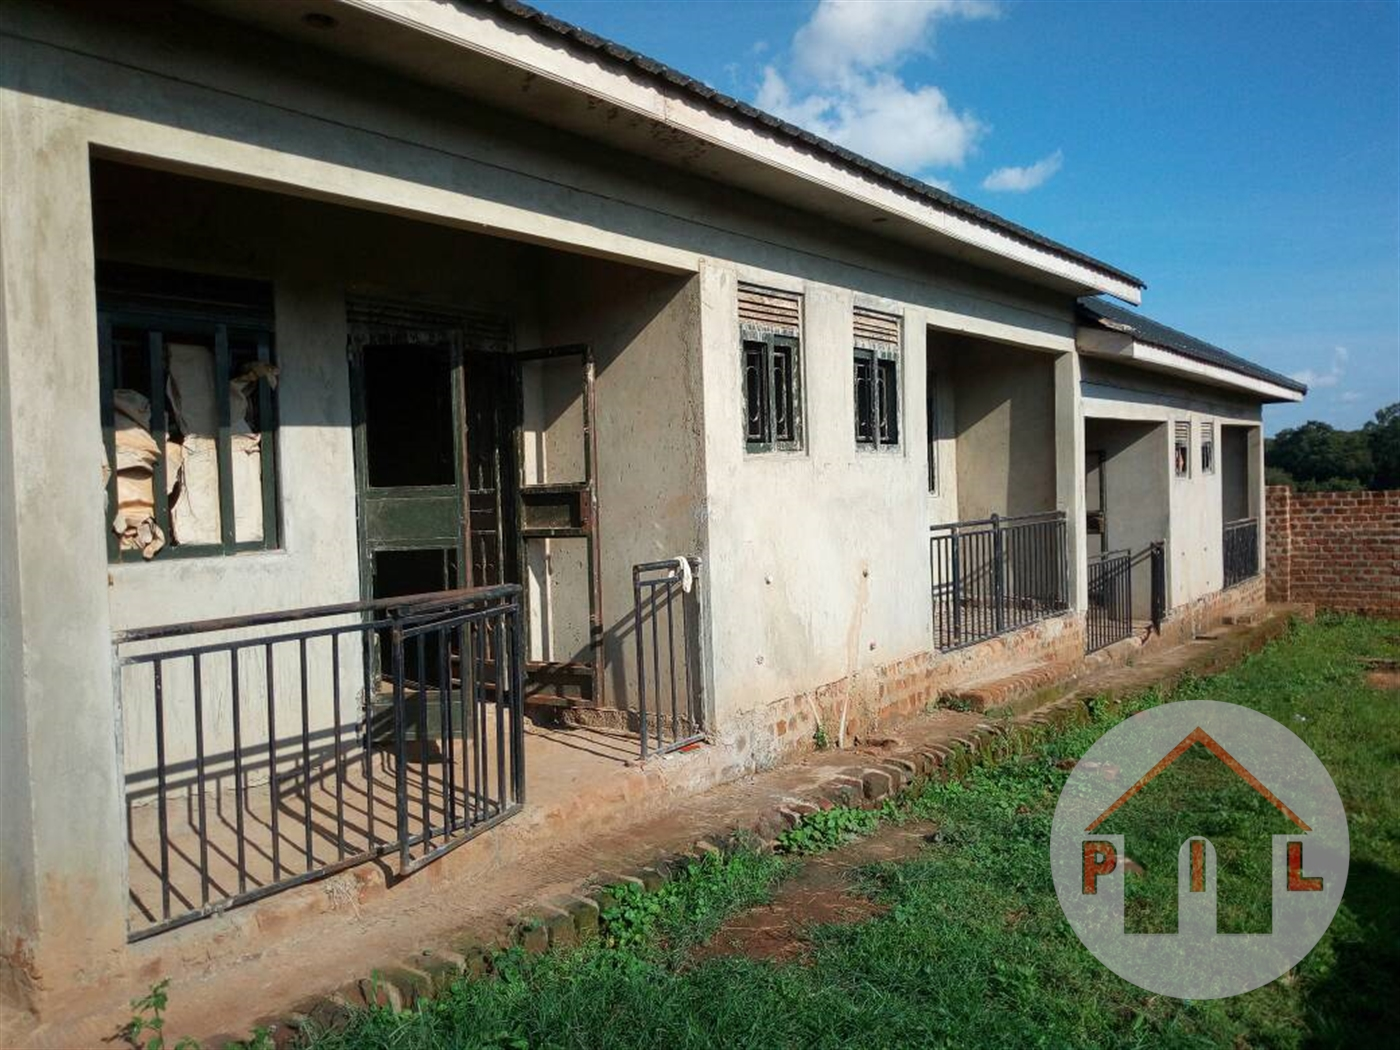 Rental units (for sale) for sale in Gayaza Wakiso